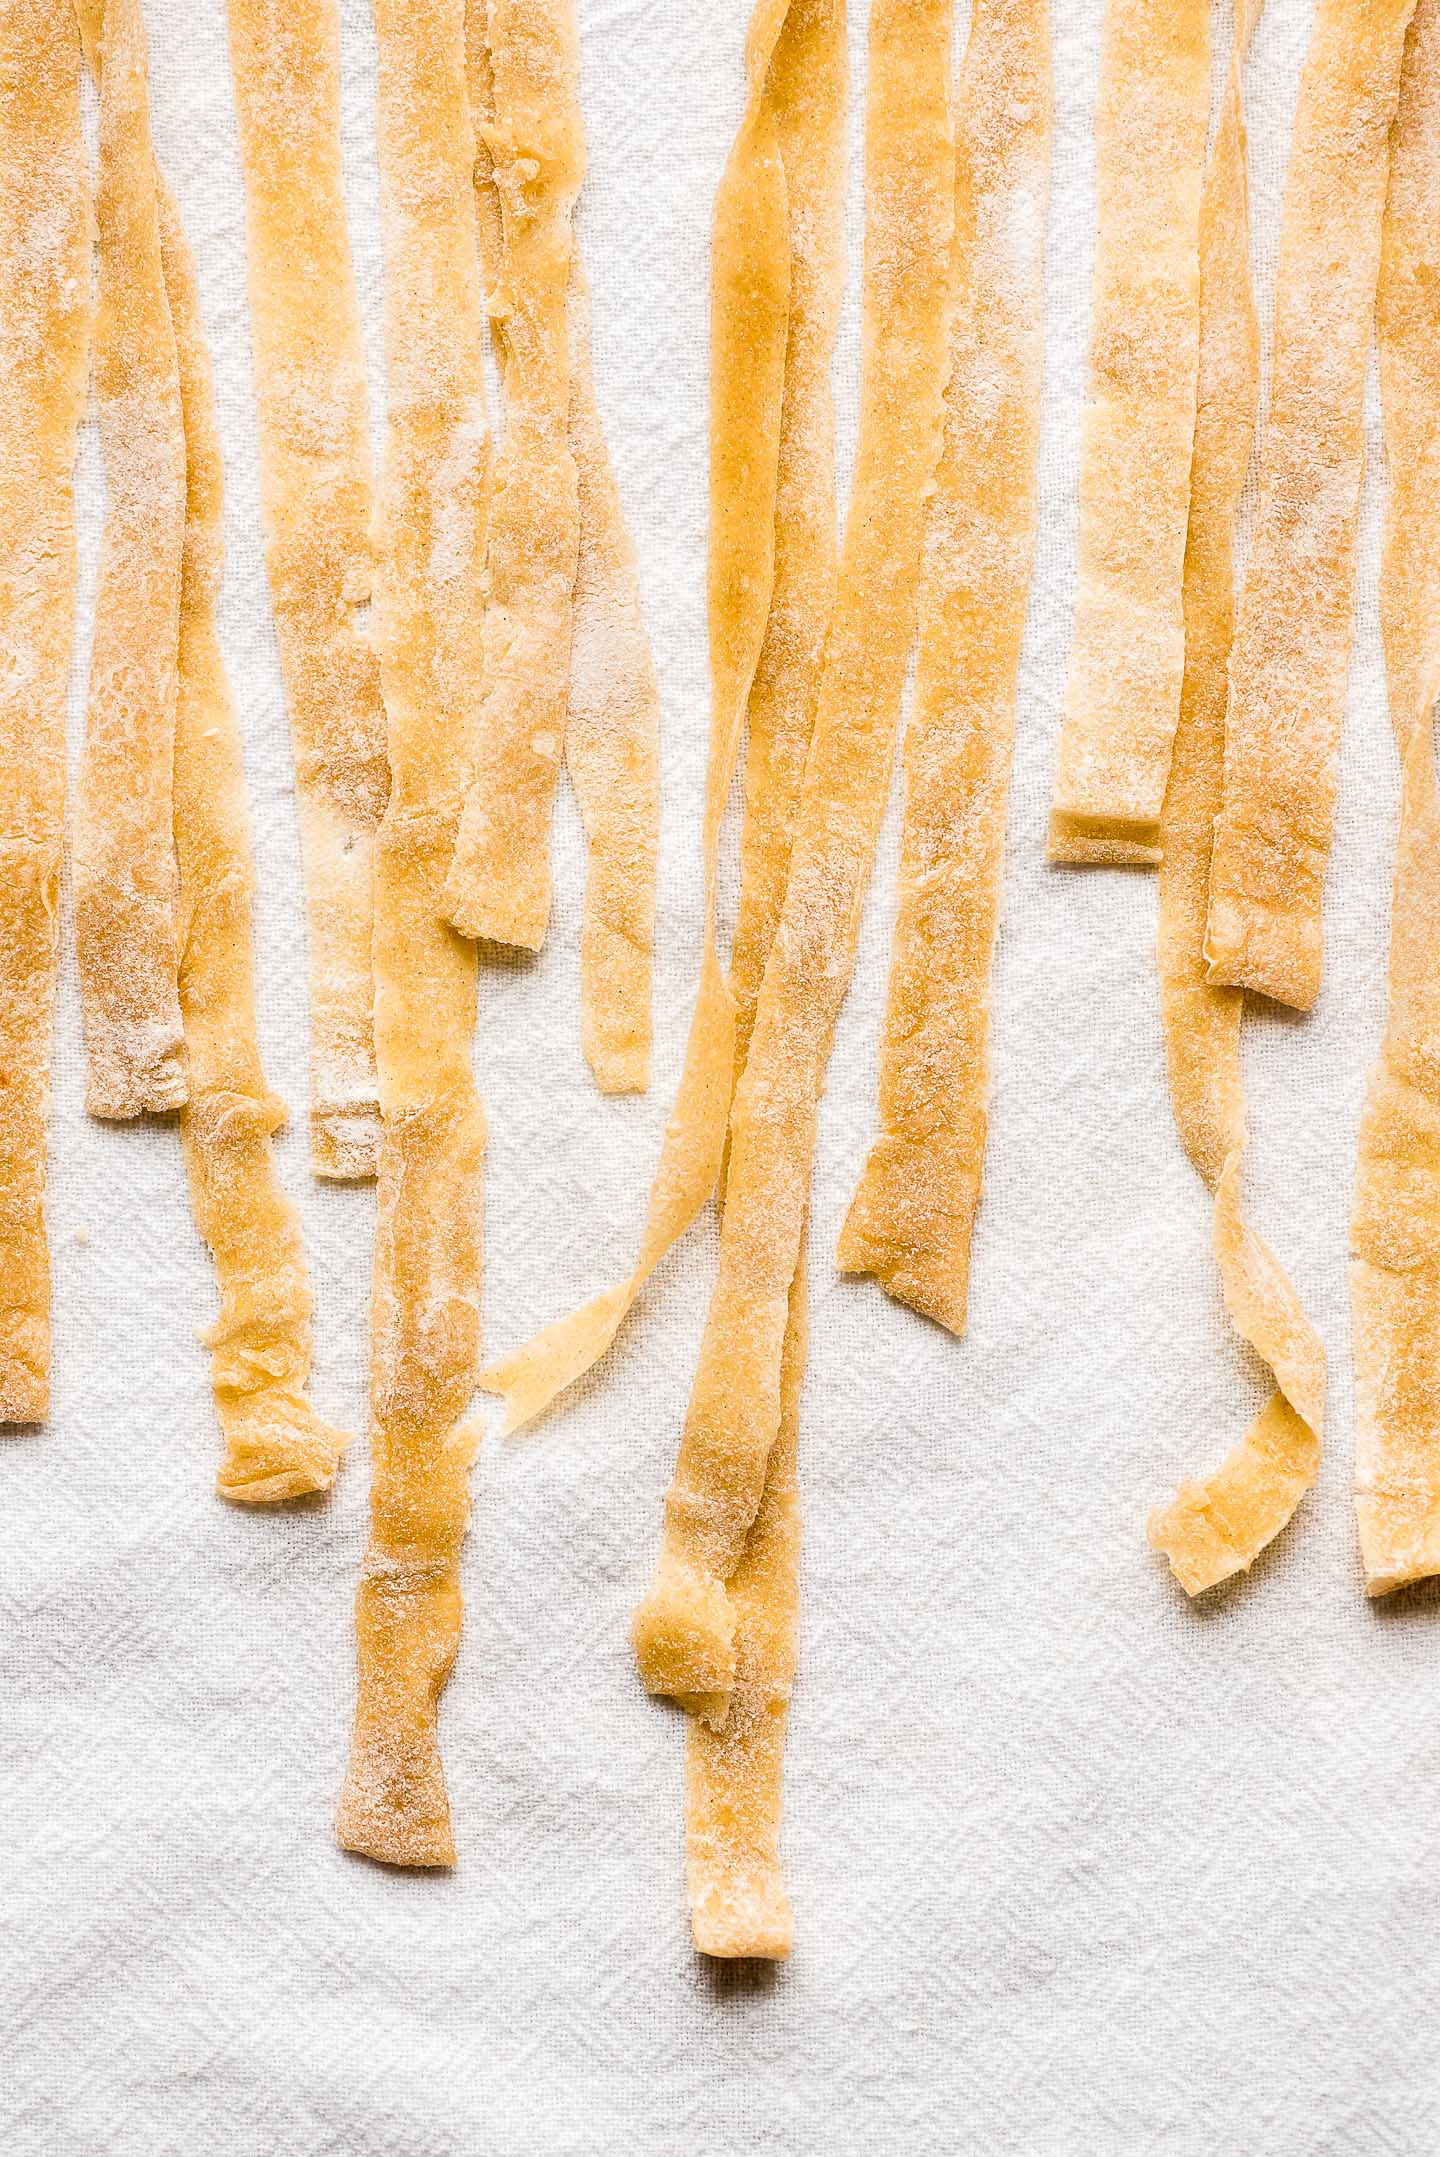 The ends of long egg noodles on a tea towel dusted in flour.